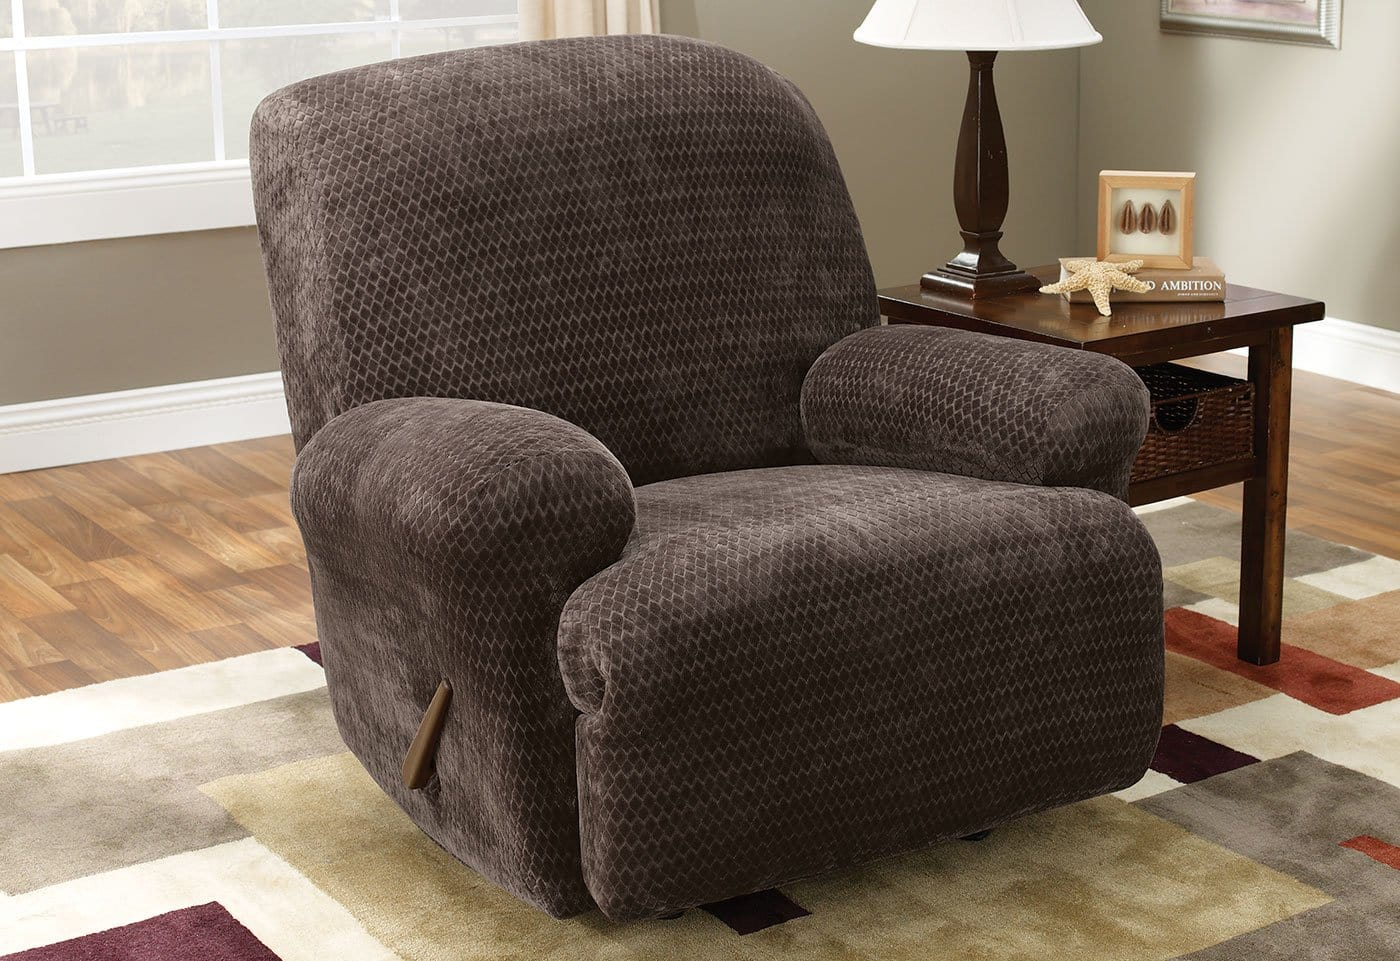 Stretch Royal Diamond One Piece Recliner Slipcover Form Fit Machine Washable - Recliner / Chocolate